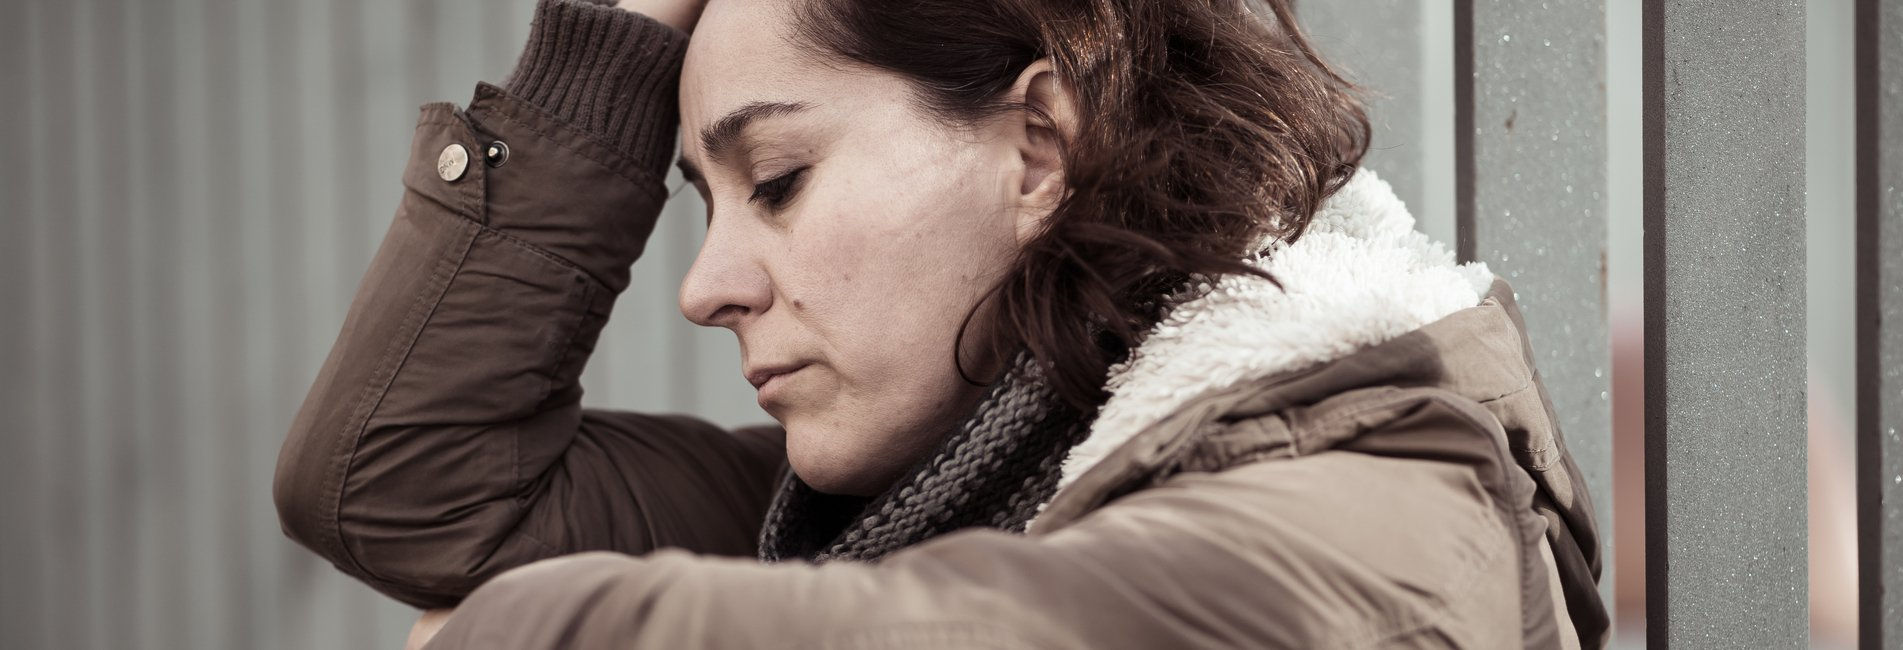 A Peer Addiction Coach for Recovery Resurgence – When going through recovery, a peer addiction coach is helpful for many.